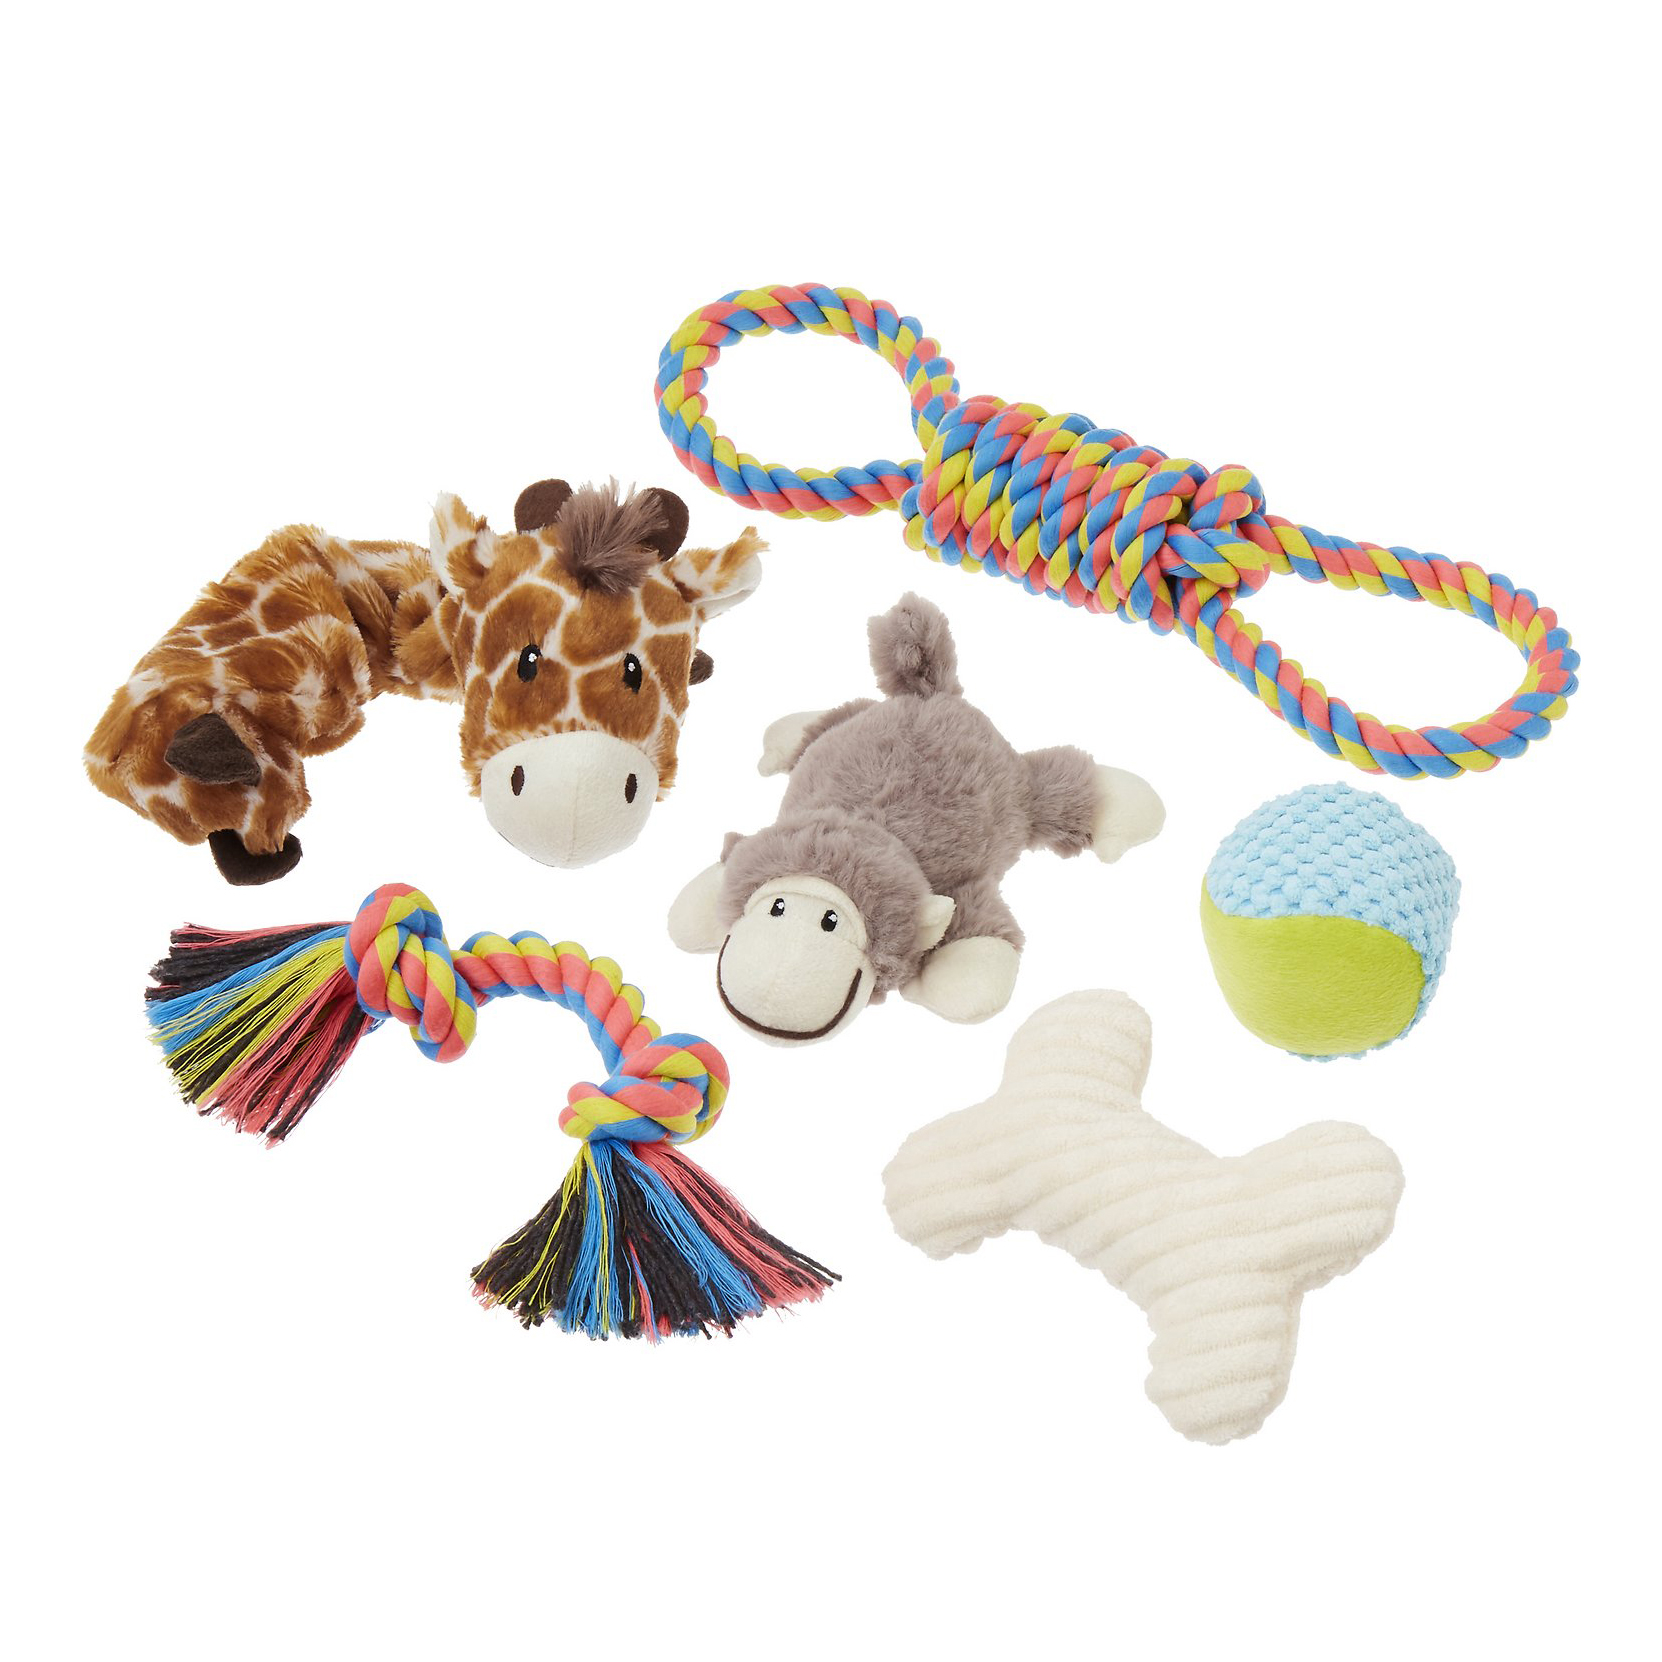 frisco-jungle-pals-plush-and-rope-variety-pack-dog-toy-6-count